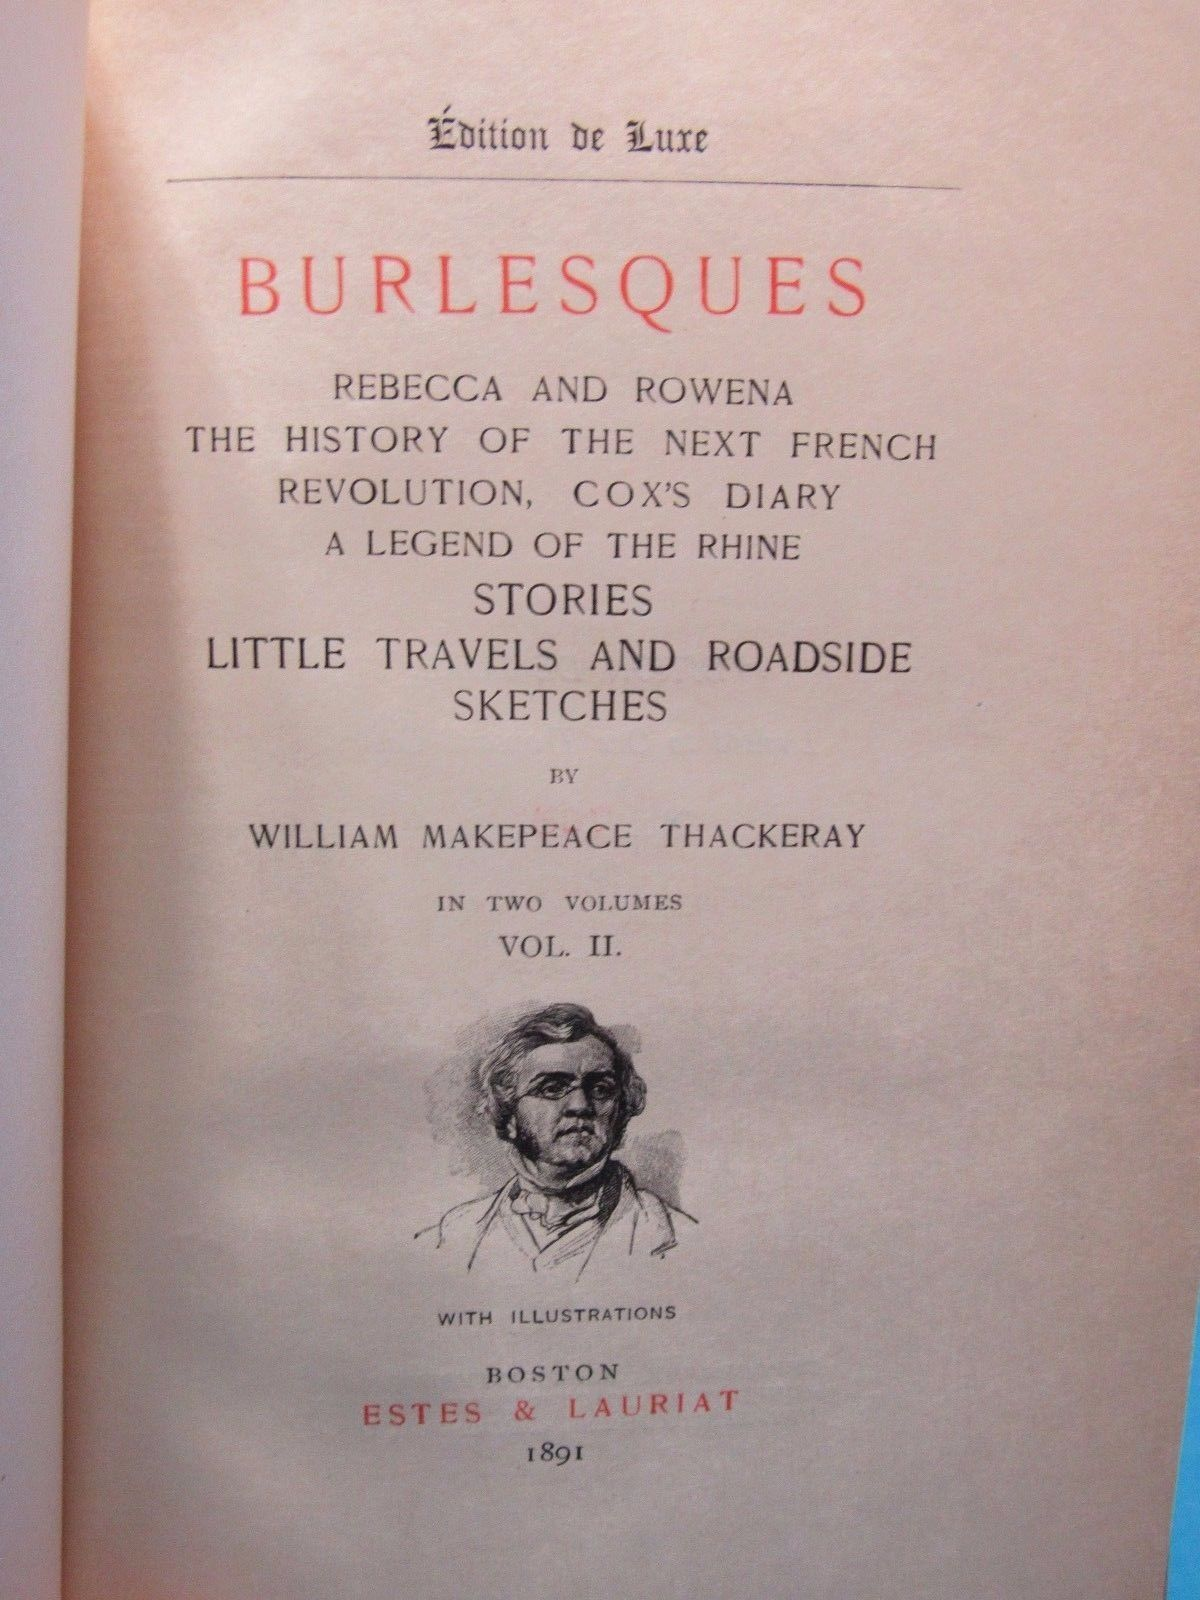 1891 28 Volume Set Numbered Limited Edition Works of William Makepeace Thackeray